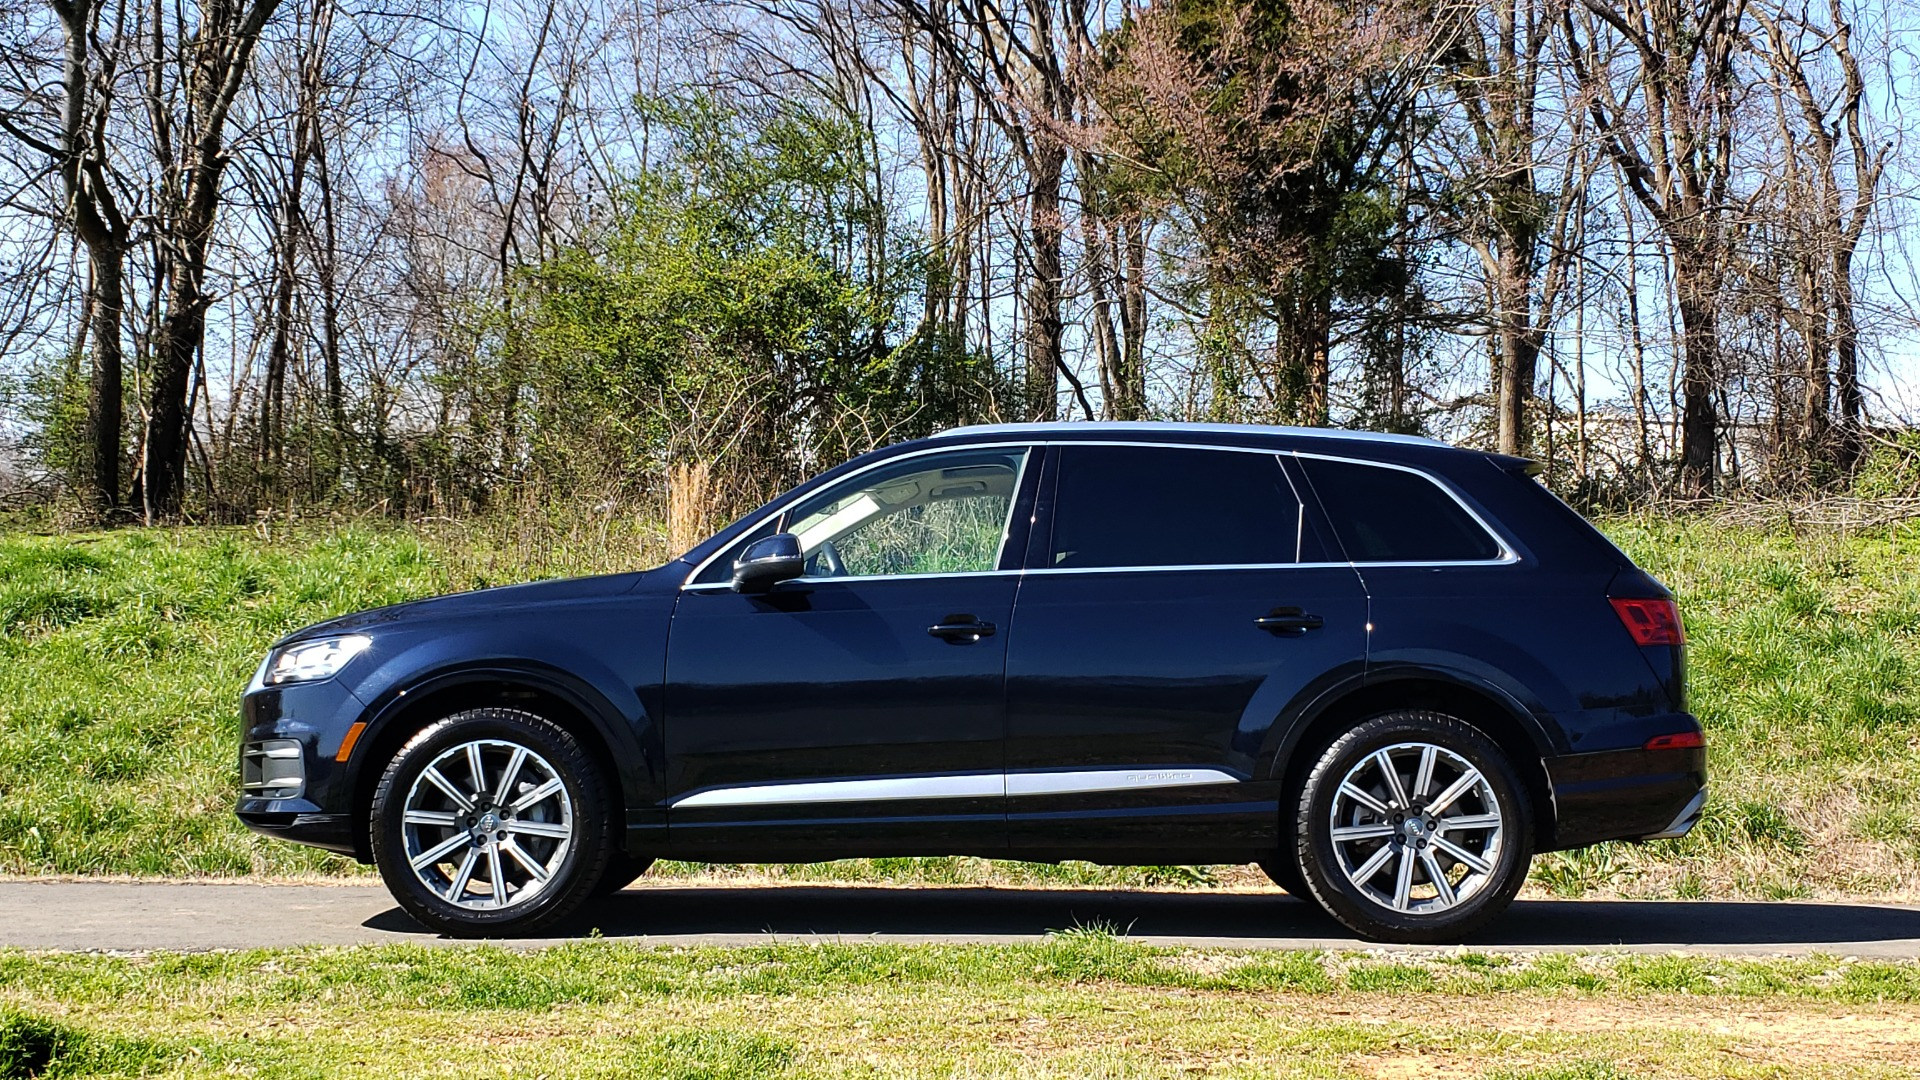 Used 2018 Audi Q7 PRESTIGE 3.0T CLD WTHR / NAV / BOSE / HEADS-UP / REARVIEW for sale Sold at Formula Imports in Charlotte NC 28227 2